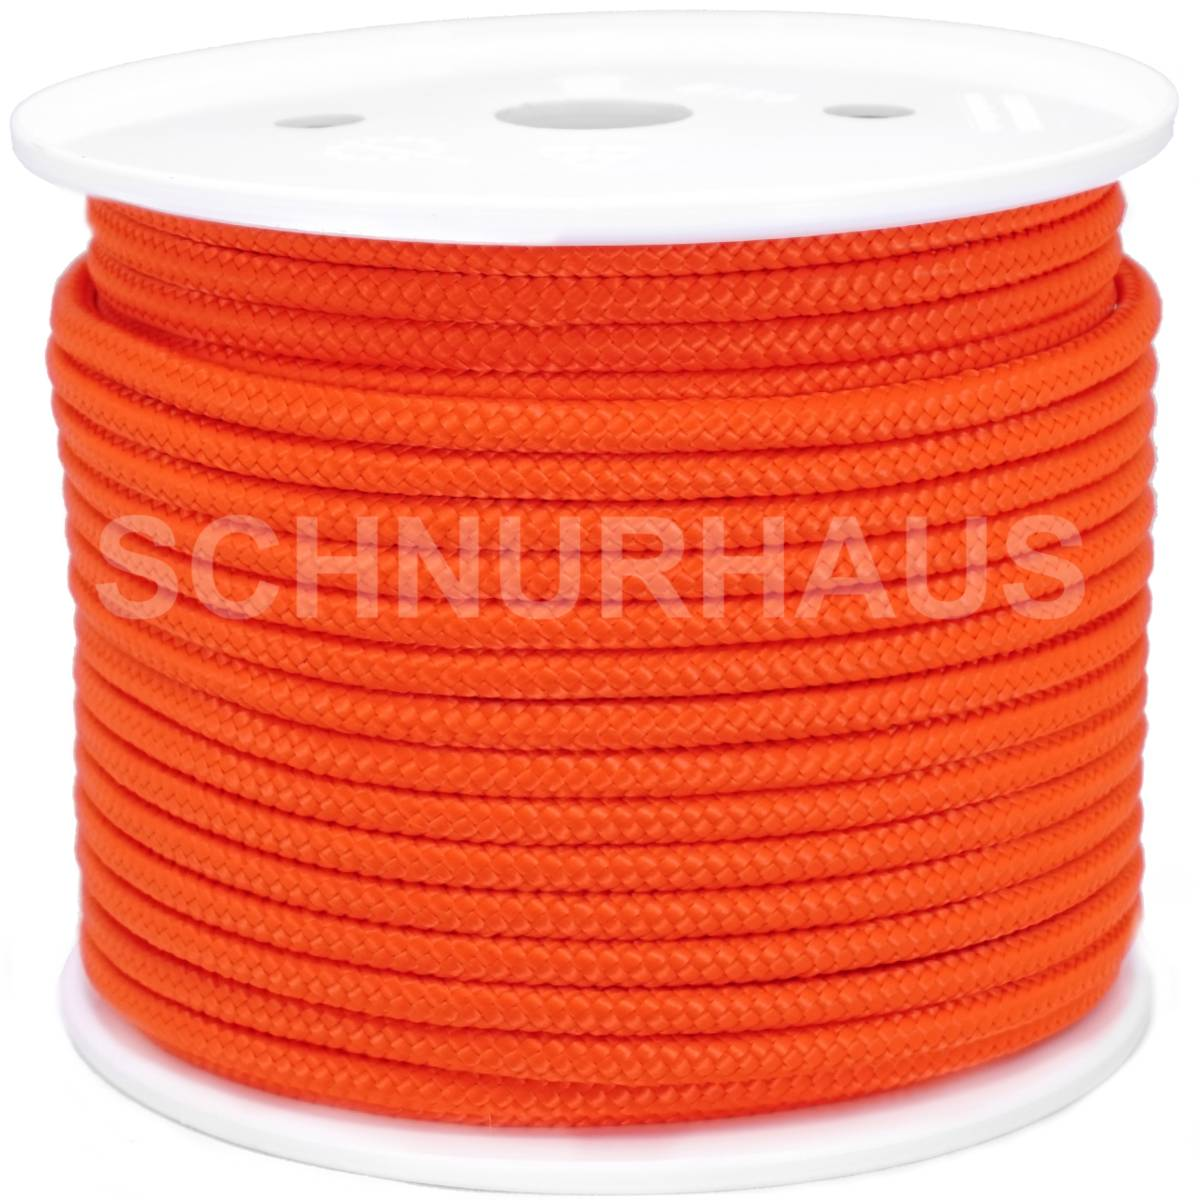 PP orange 1155 ( orange ) Seil Schnur